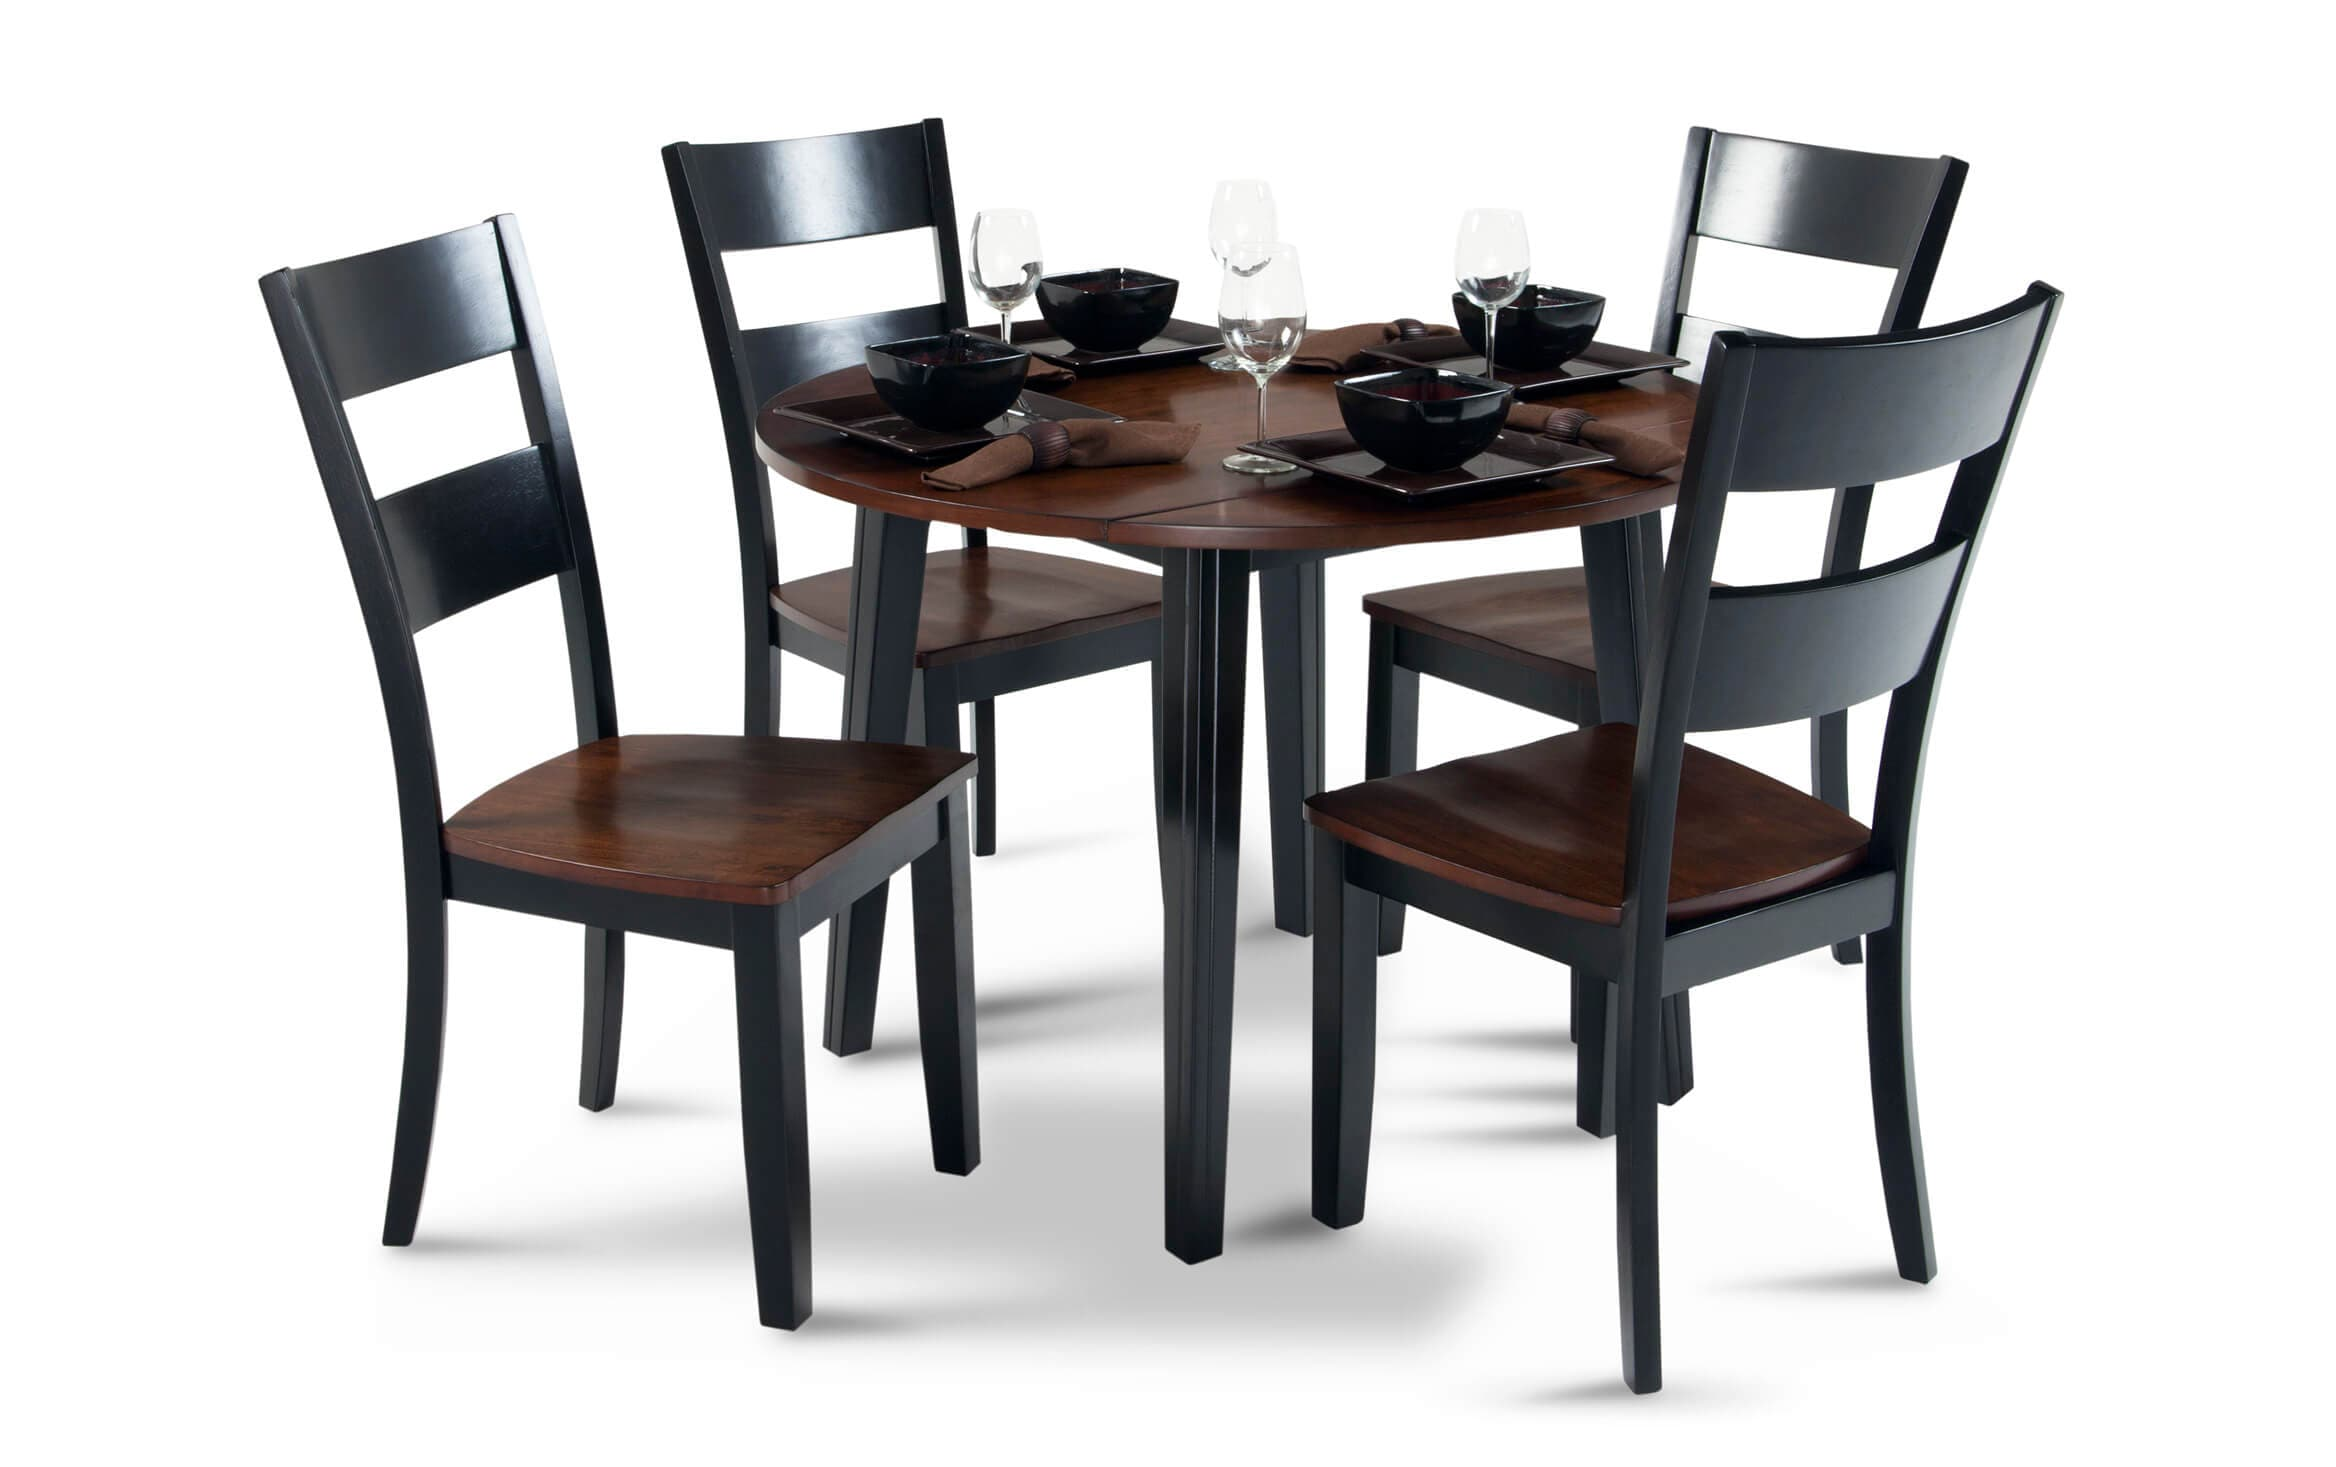 Silver Dining Table And Chairs, Blake Cherry Black 5 Piece Drop Leaf Set Bobs Com